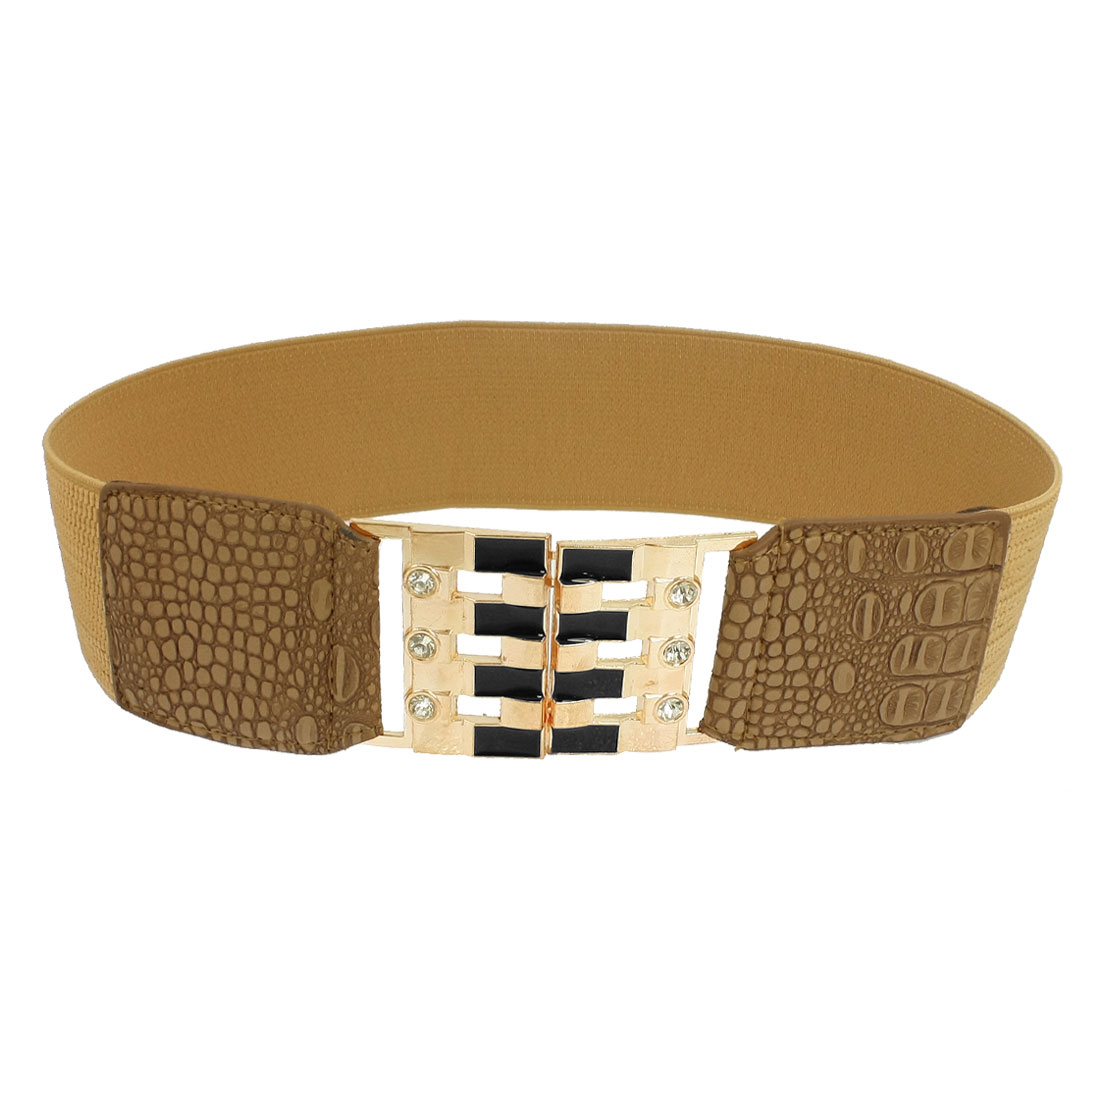 Lady Rhinestones Inlaid Snake Pattern Faux Leather Elastic Cinch Band Waist Belt Brown